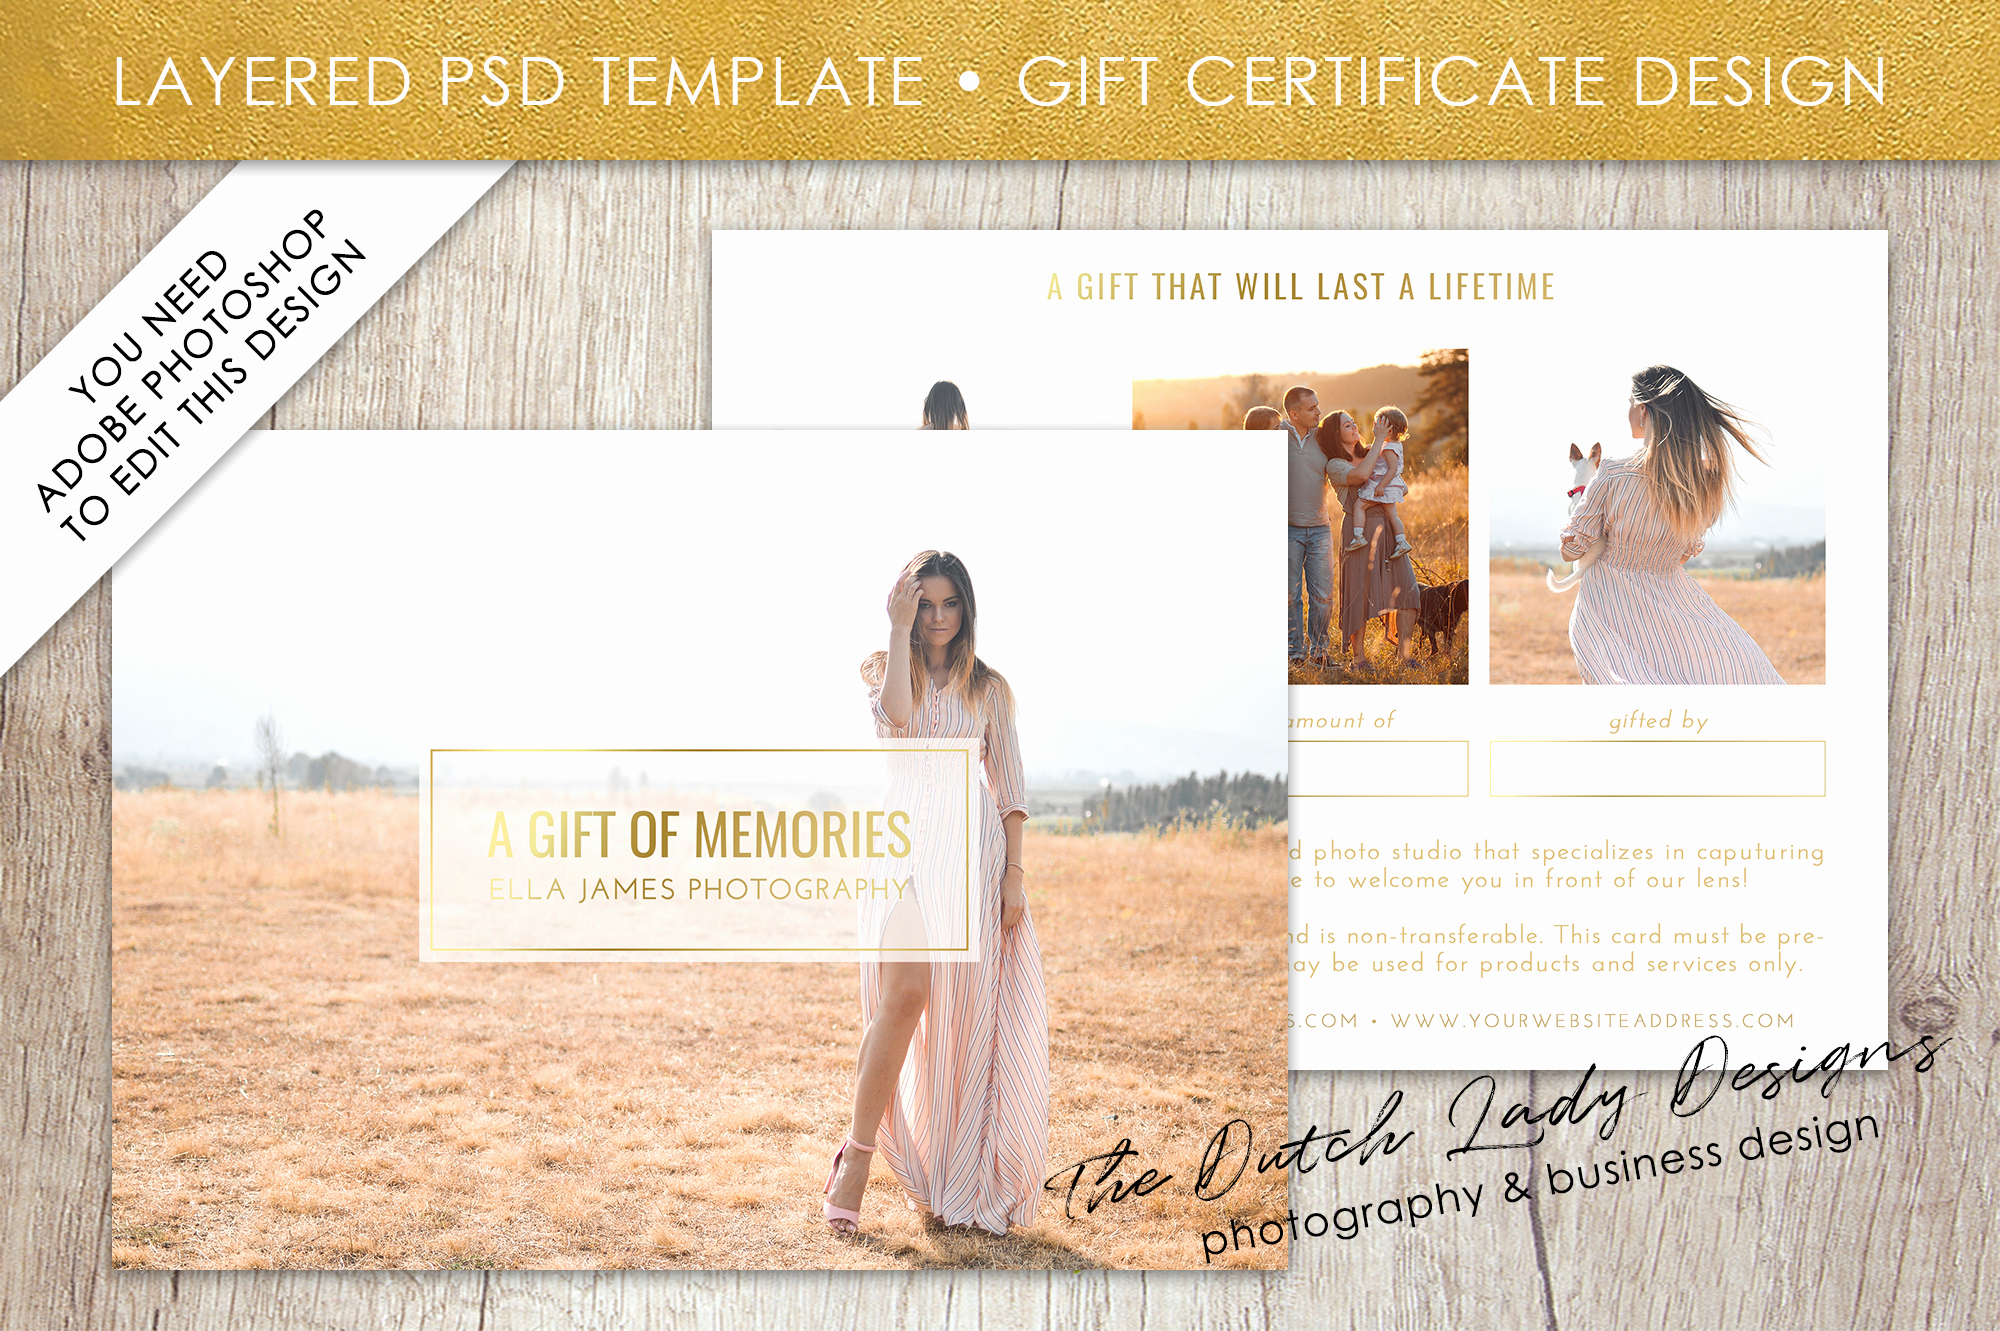 Gift Certificate Template Psd Lovely Gift Card Template for Adobe Shop Layered Psd